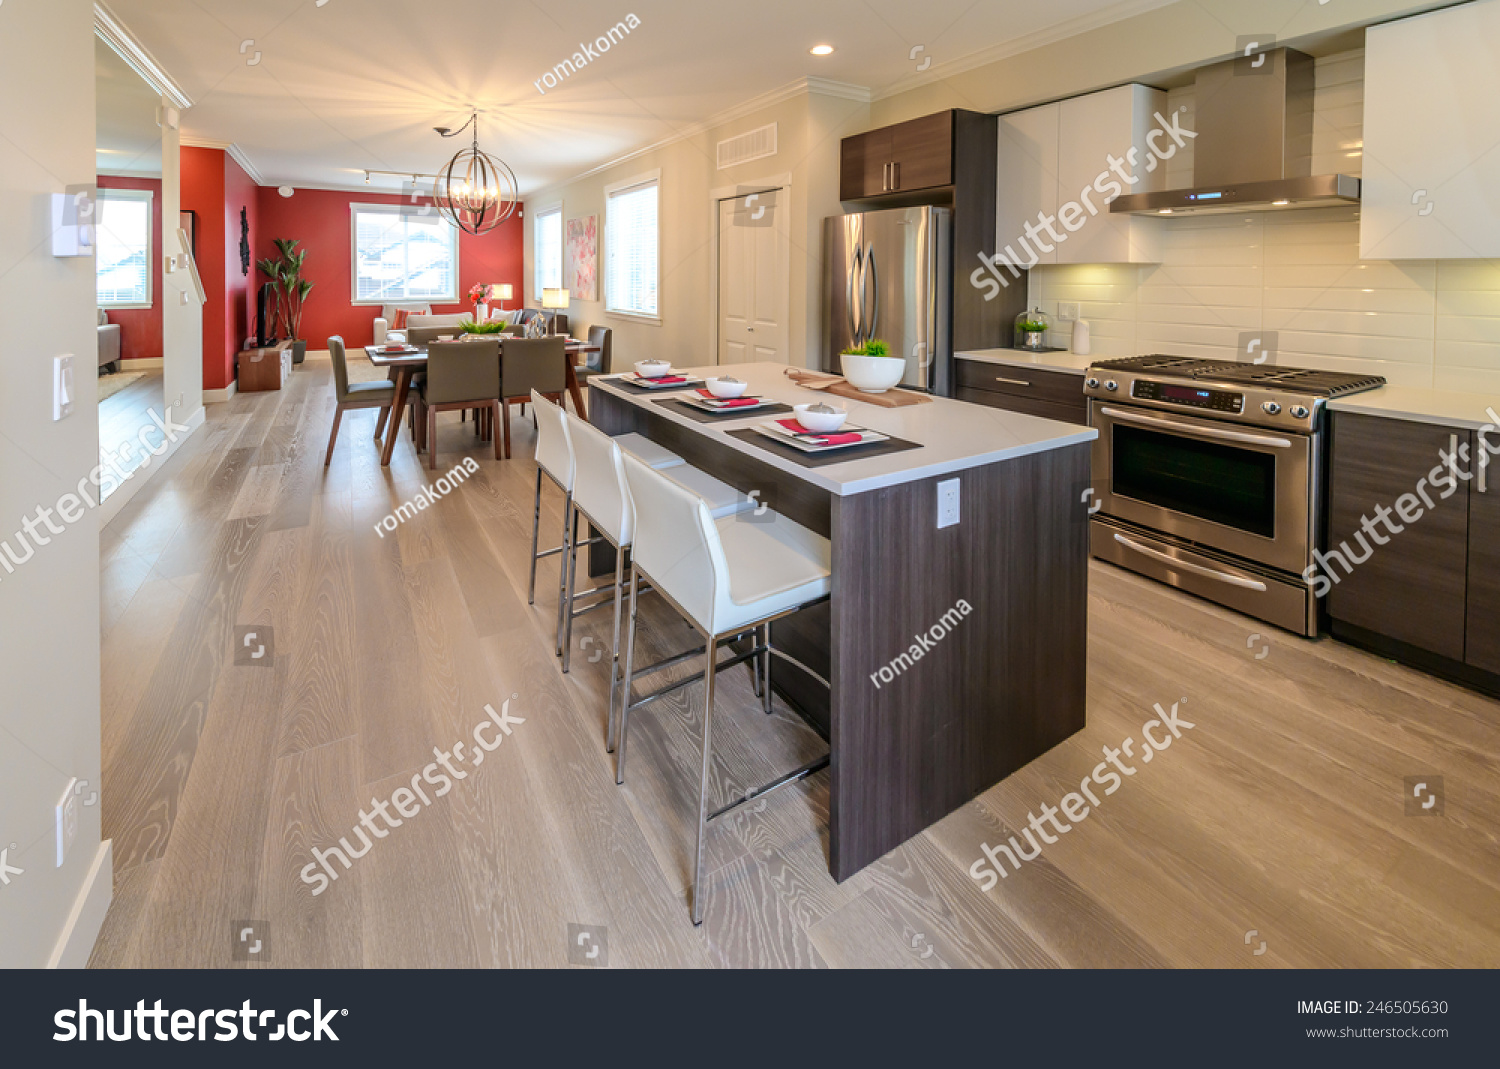 Nicely decorated kitchen counter table iceland table and dining table and living room at the